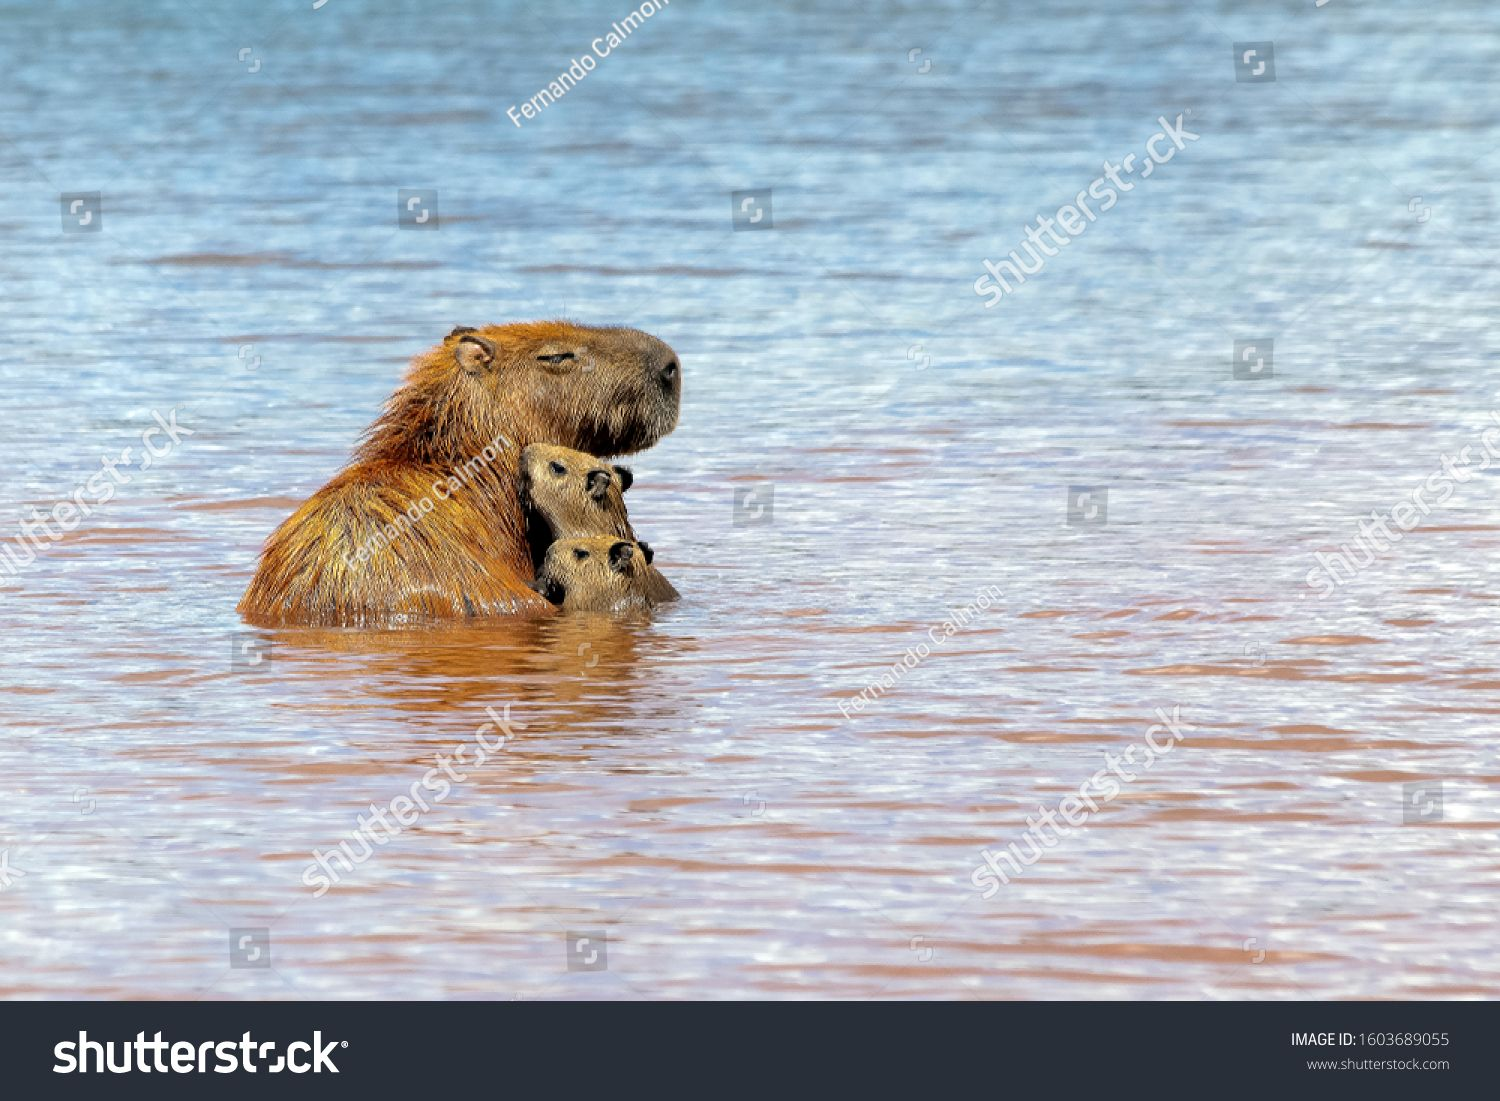 A capybara mother with her two pups sunbathing inside Lake Parano¨¢ in Brasilia, Brazil. The capybara is the largest rodent in the world. Species Hydrochoerus hydrochaeris. Wildlife. Cerrado. #Ad , #AD, #Parano#Lake#Brazil#Brasilia